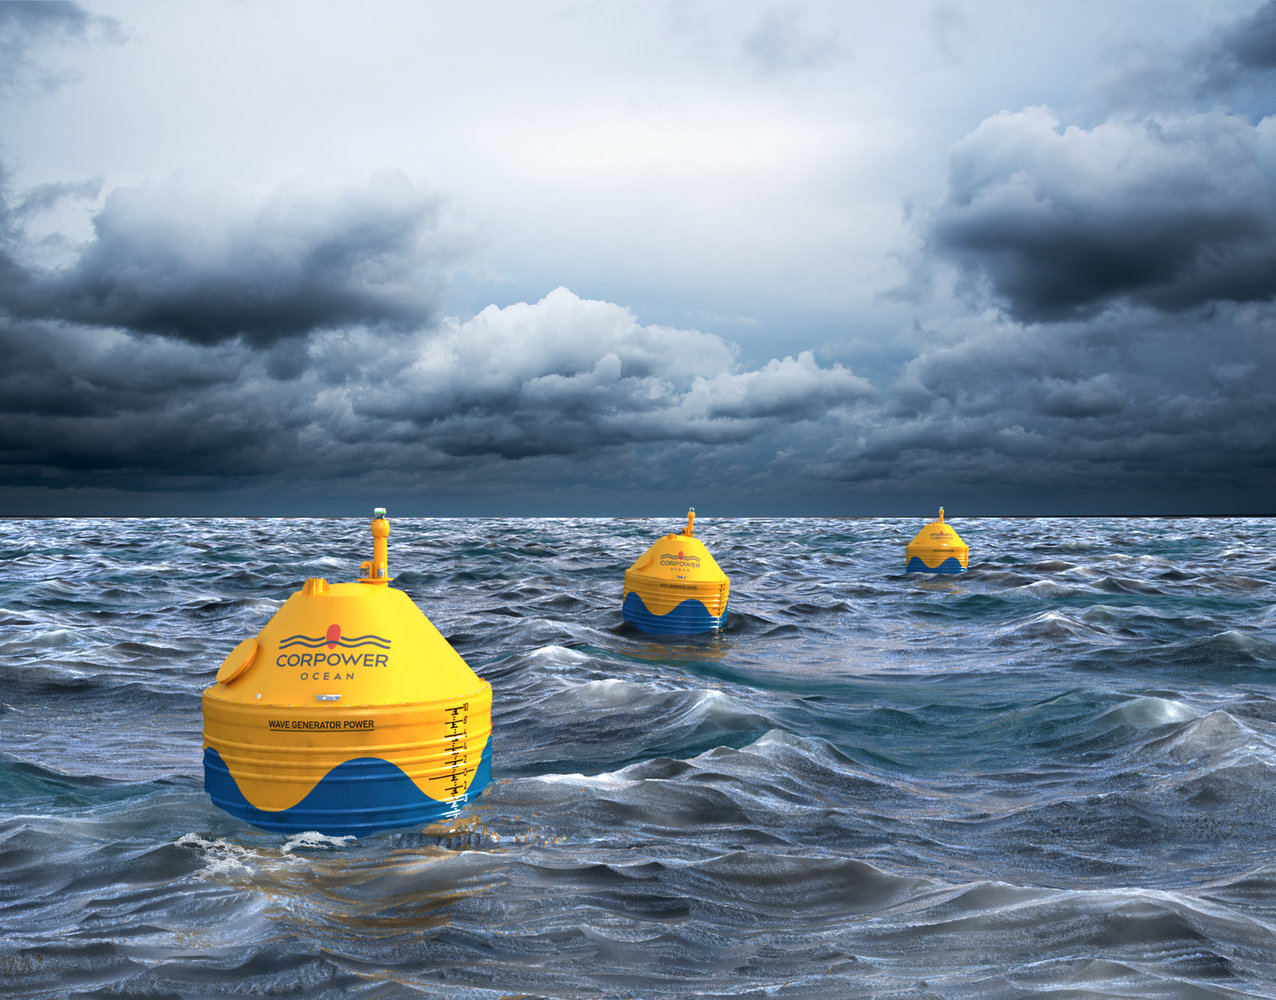 CorPower's newly established wave energy centre in Portugal to support its HiWave-5 project